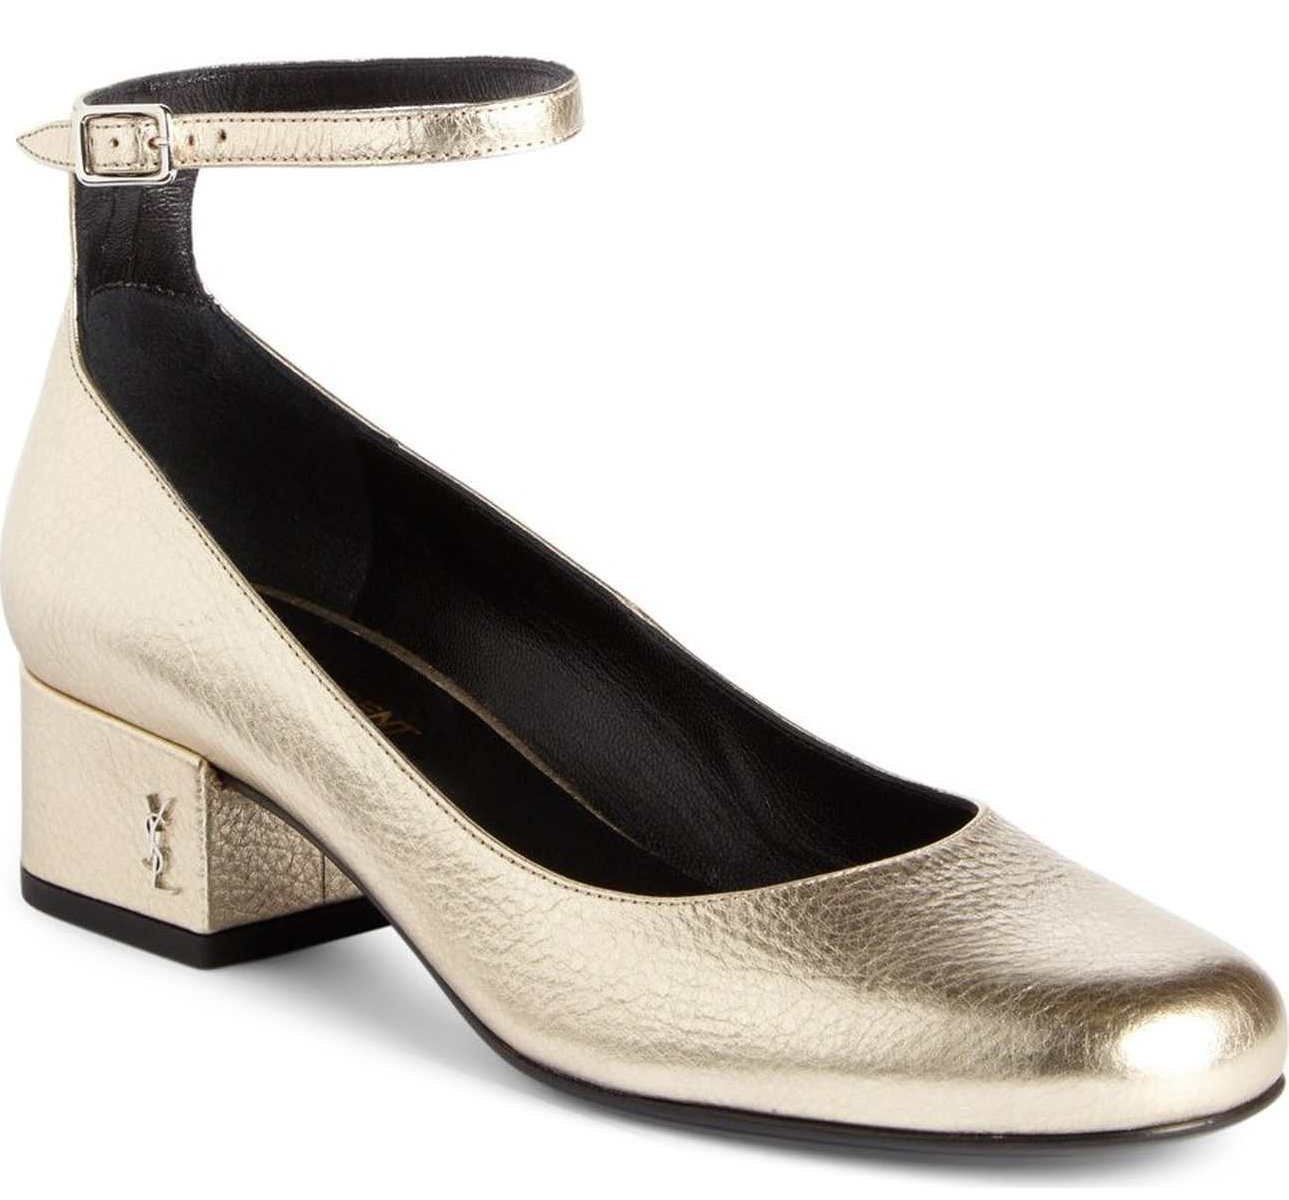 NIB Saint Laurent Babies Ankle Strap Pumps SZ 39.5 gold Leather YSL $895